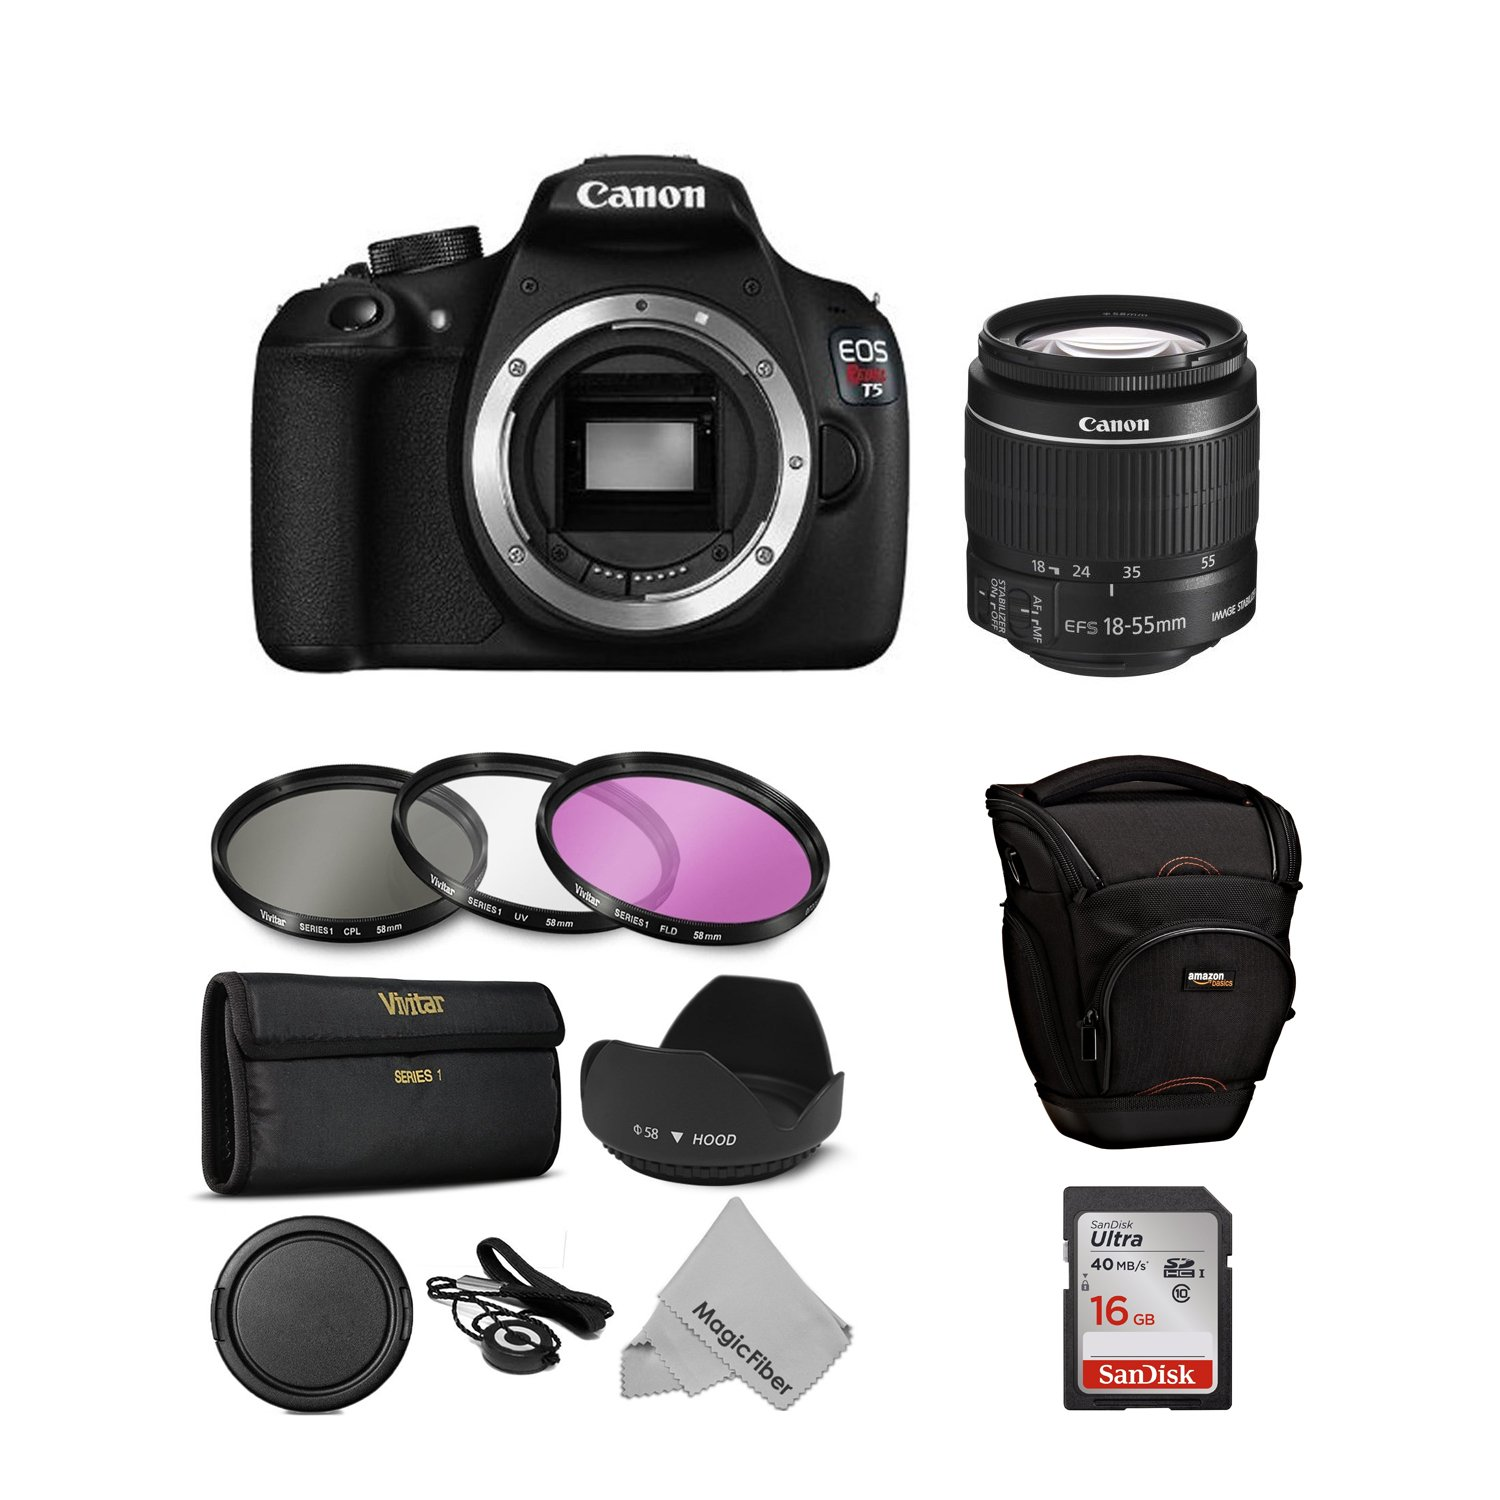 Canon EOS Rebel T5 Digital SLR Camera with 18-55mm Lens + 10 Piece Deluxe Accessory Kit Bundle